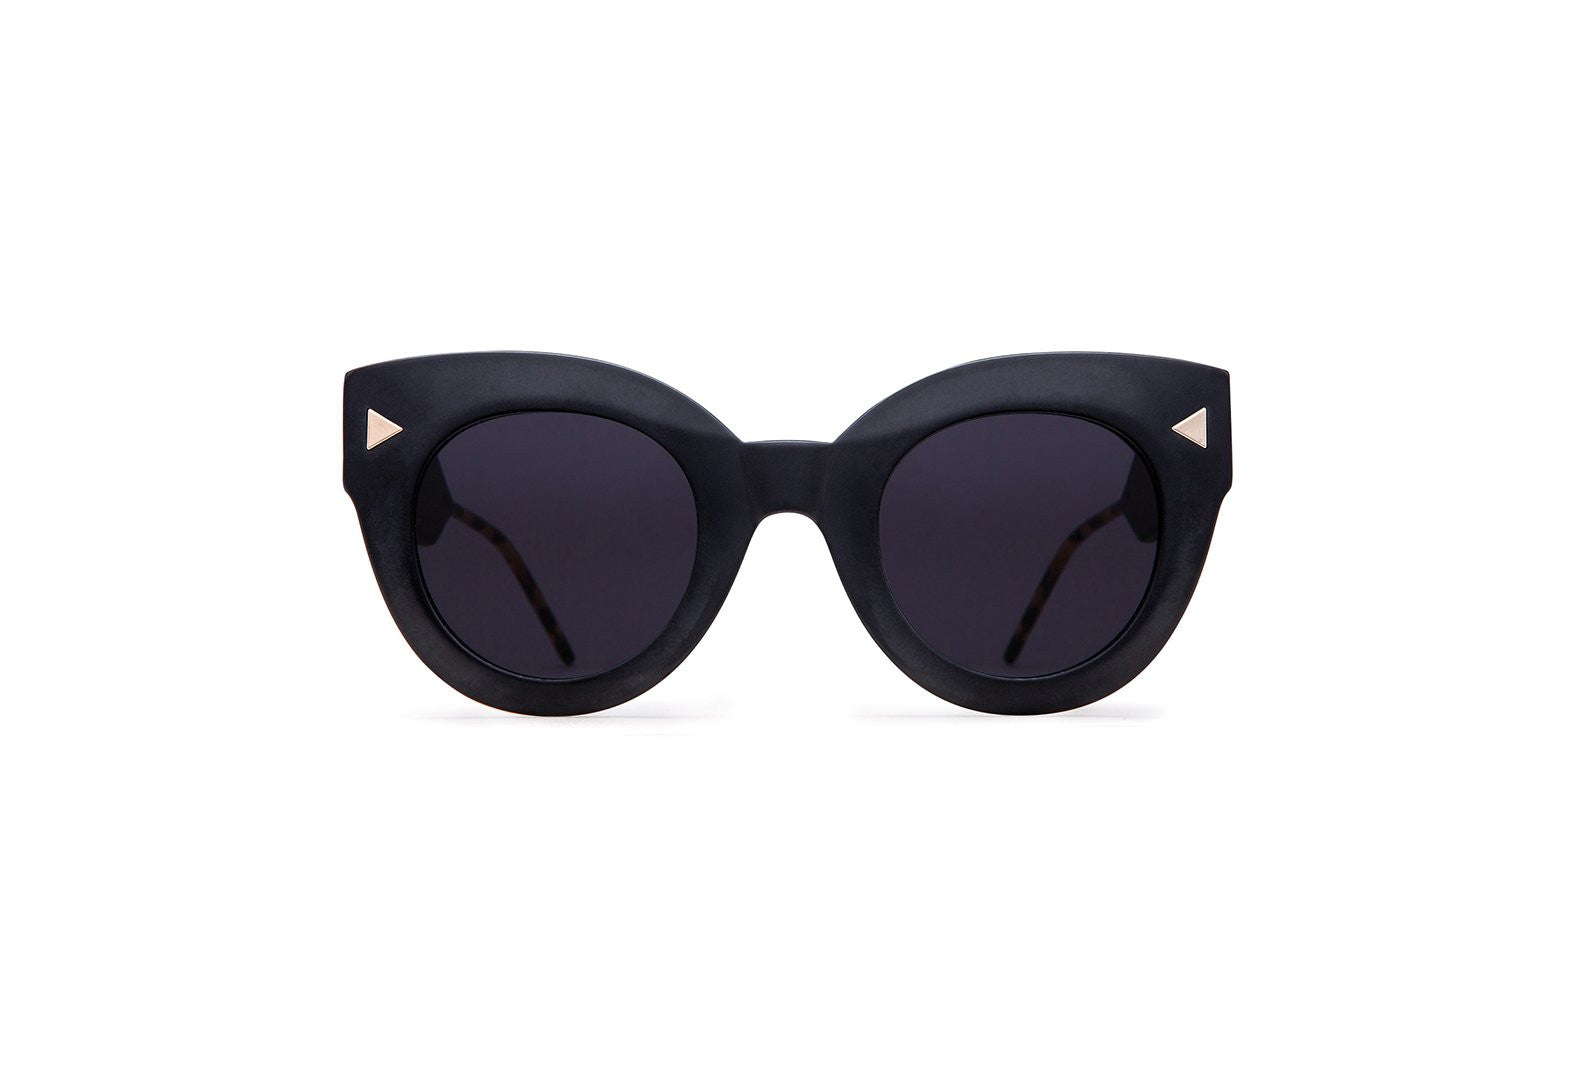 Alma Sunglasses, SoYa, Found By Lesetta